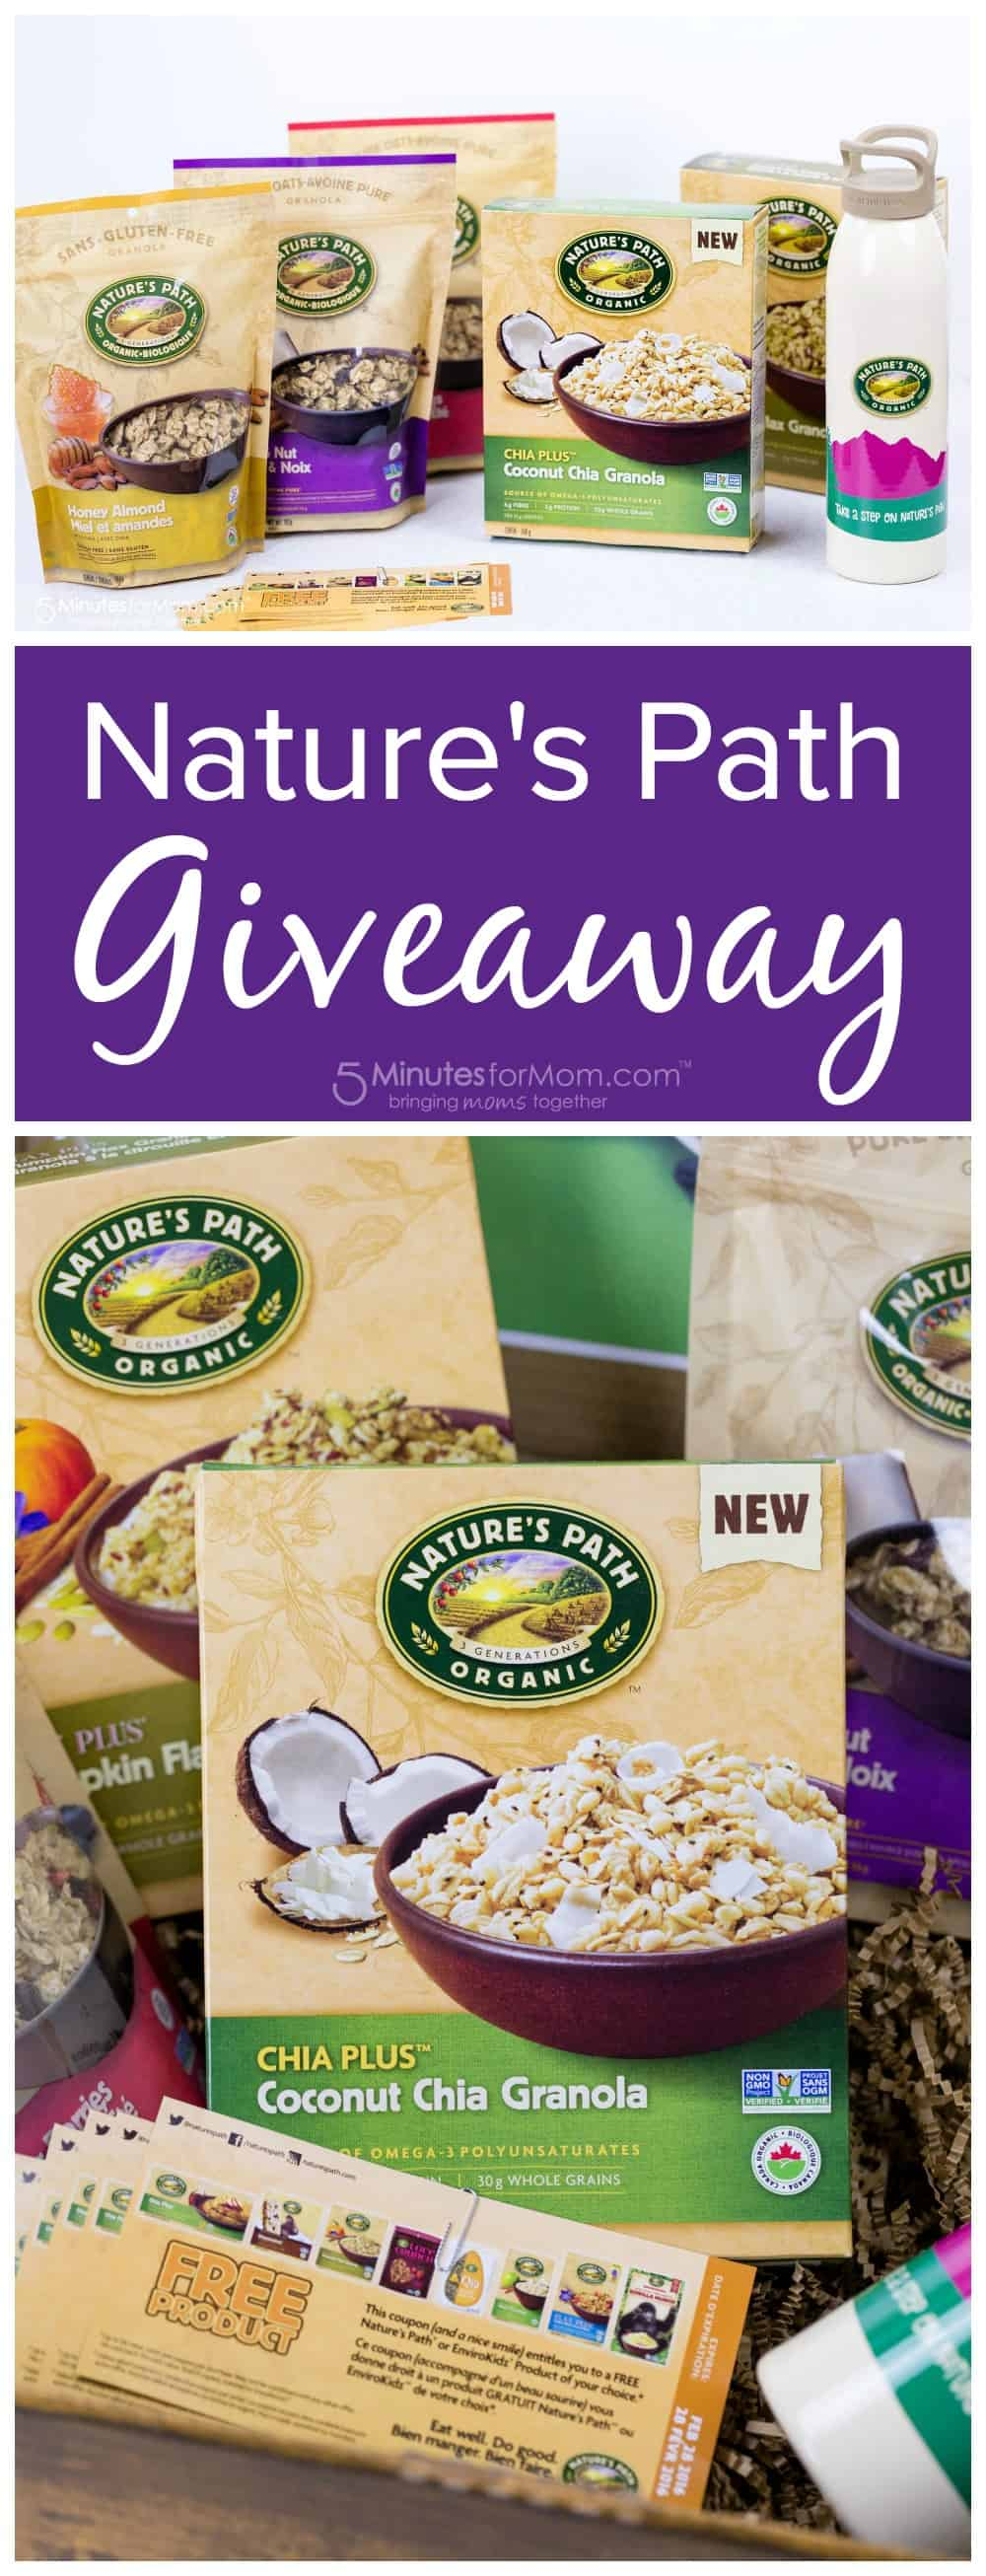 Natures Path Giveaway